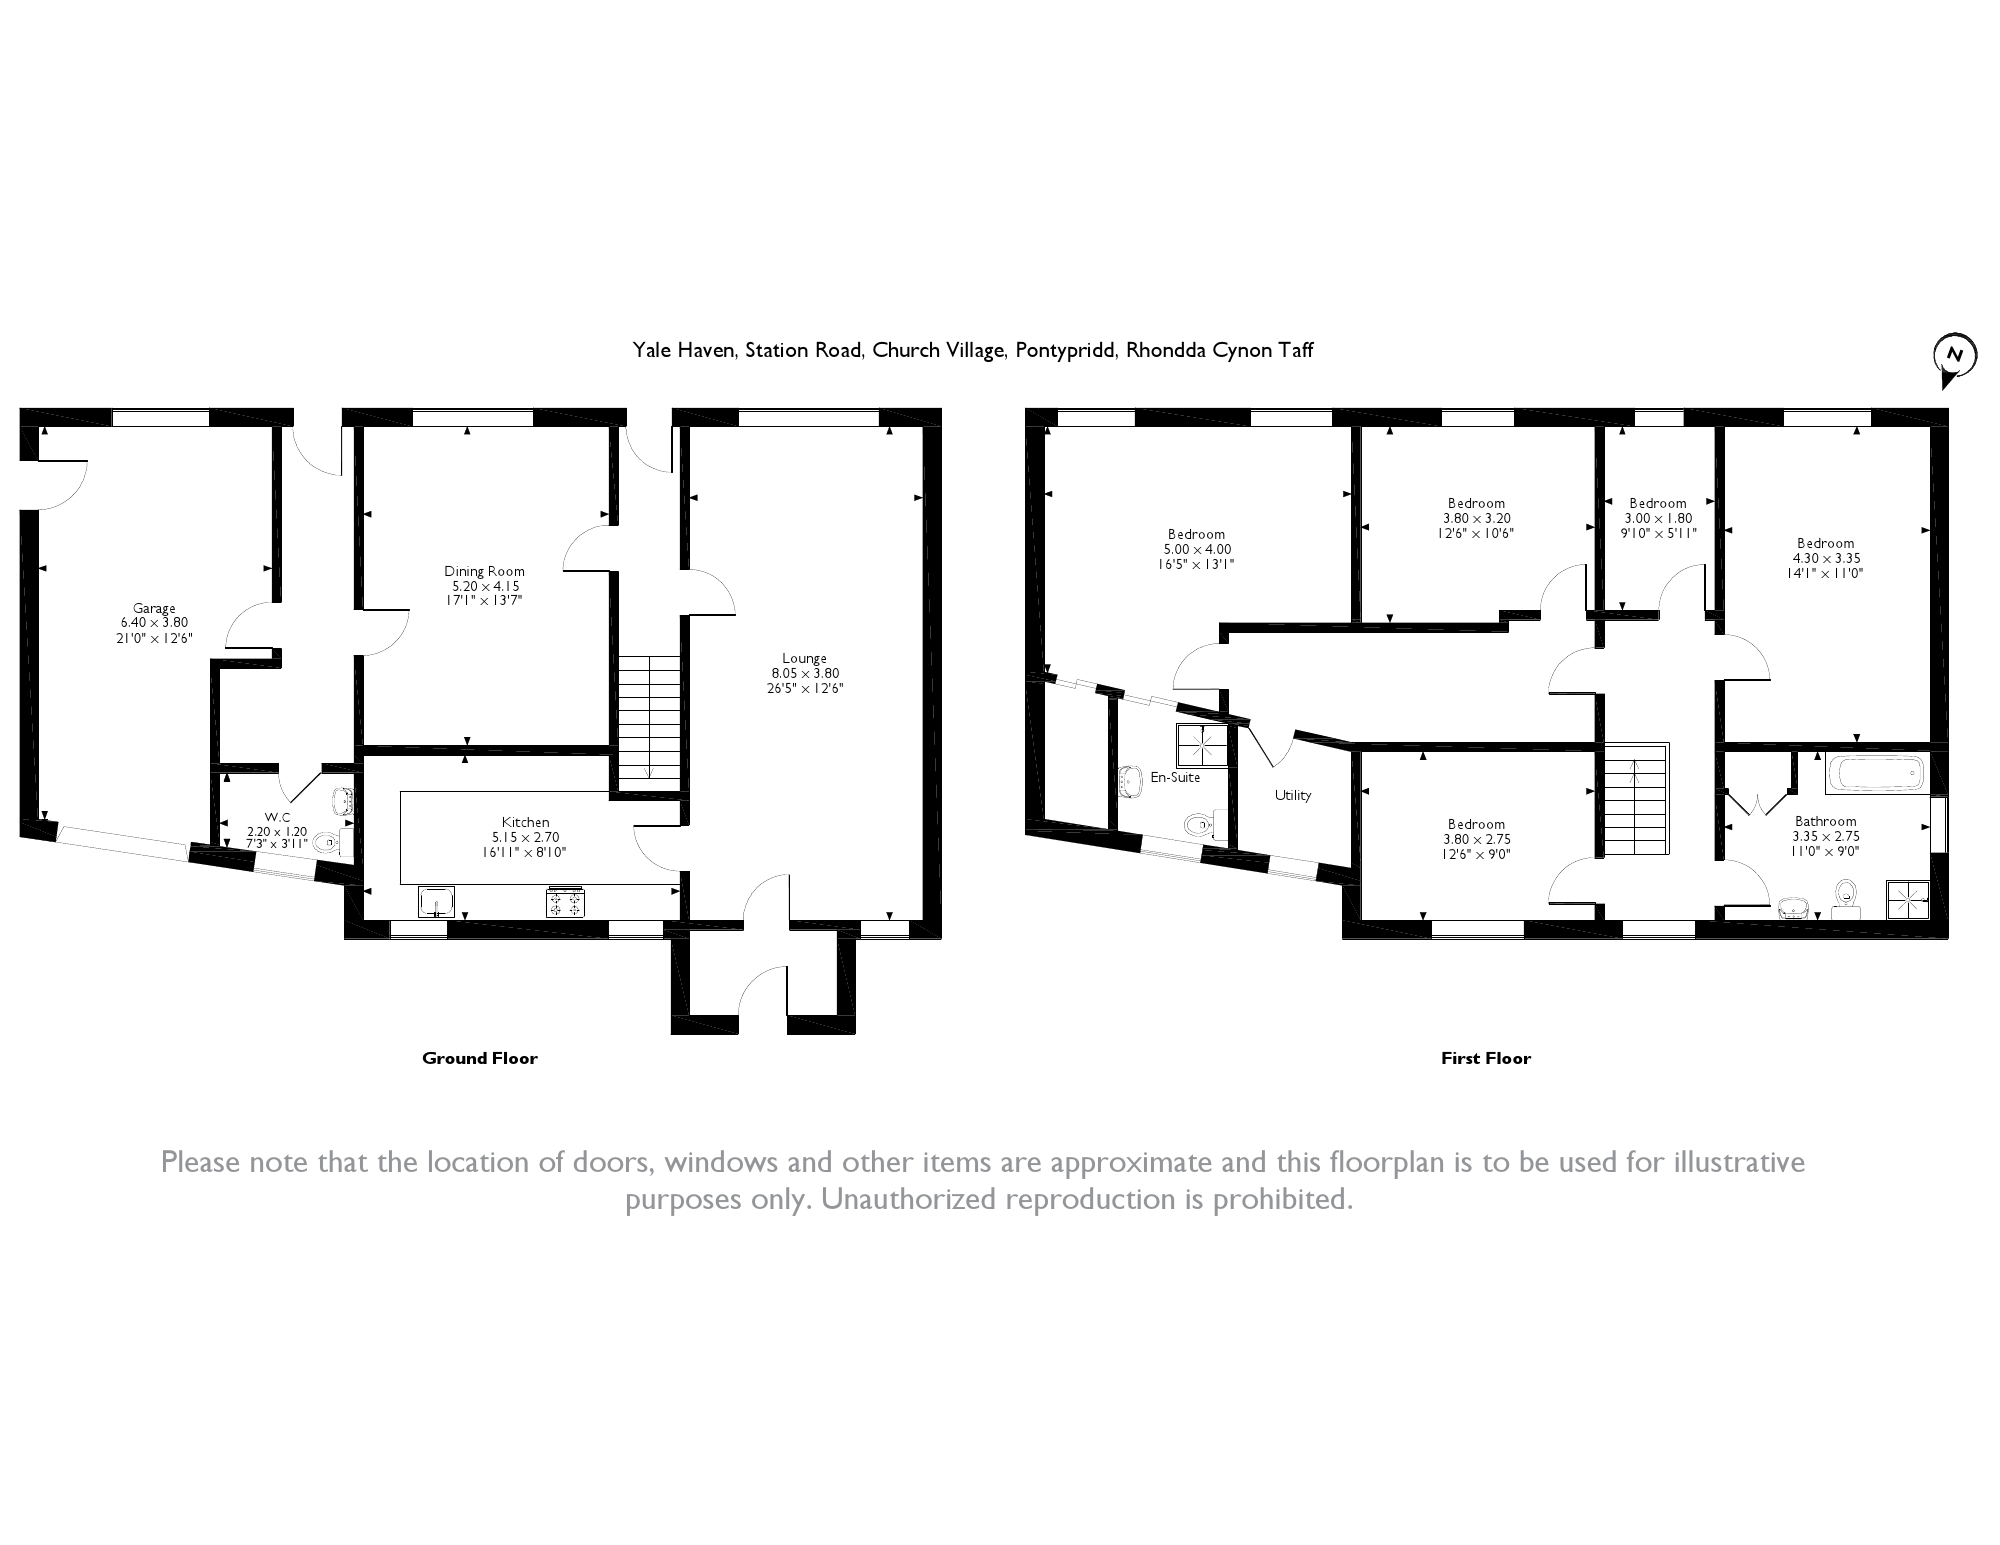 Station Road, Church Village, CF38 floor plan